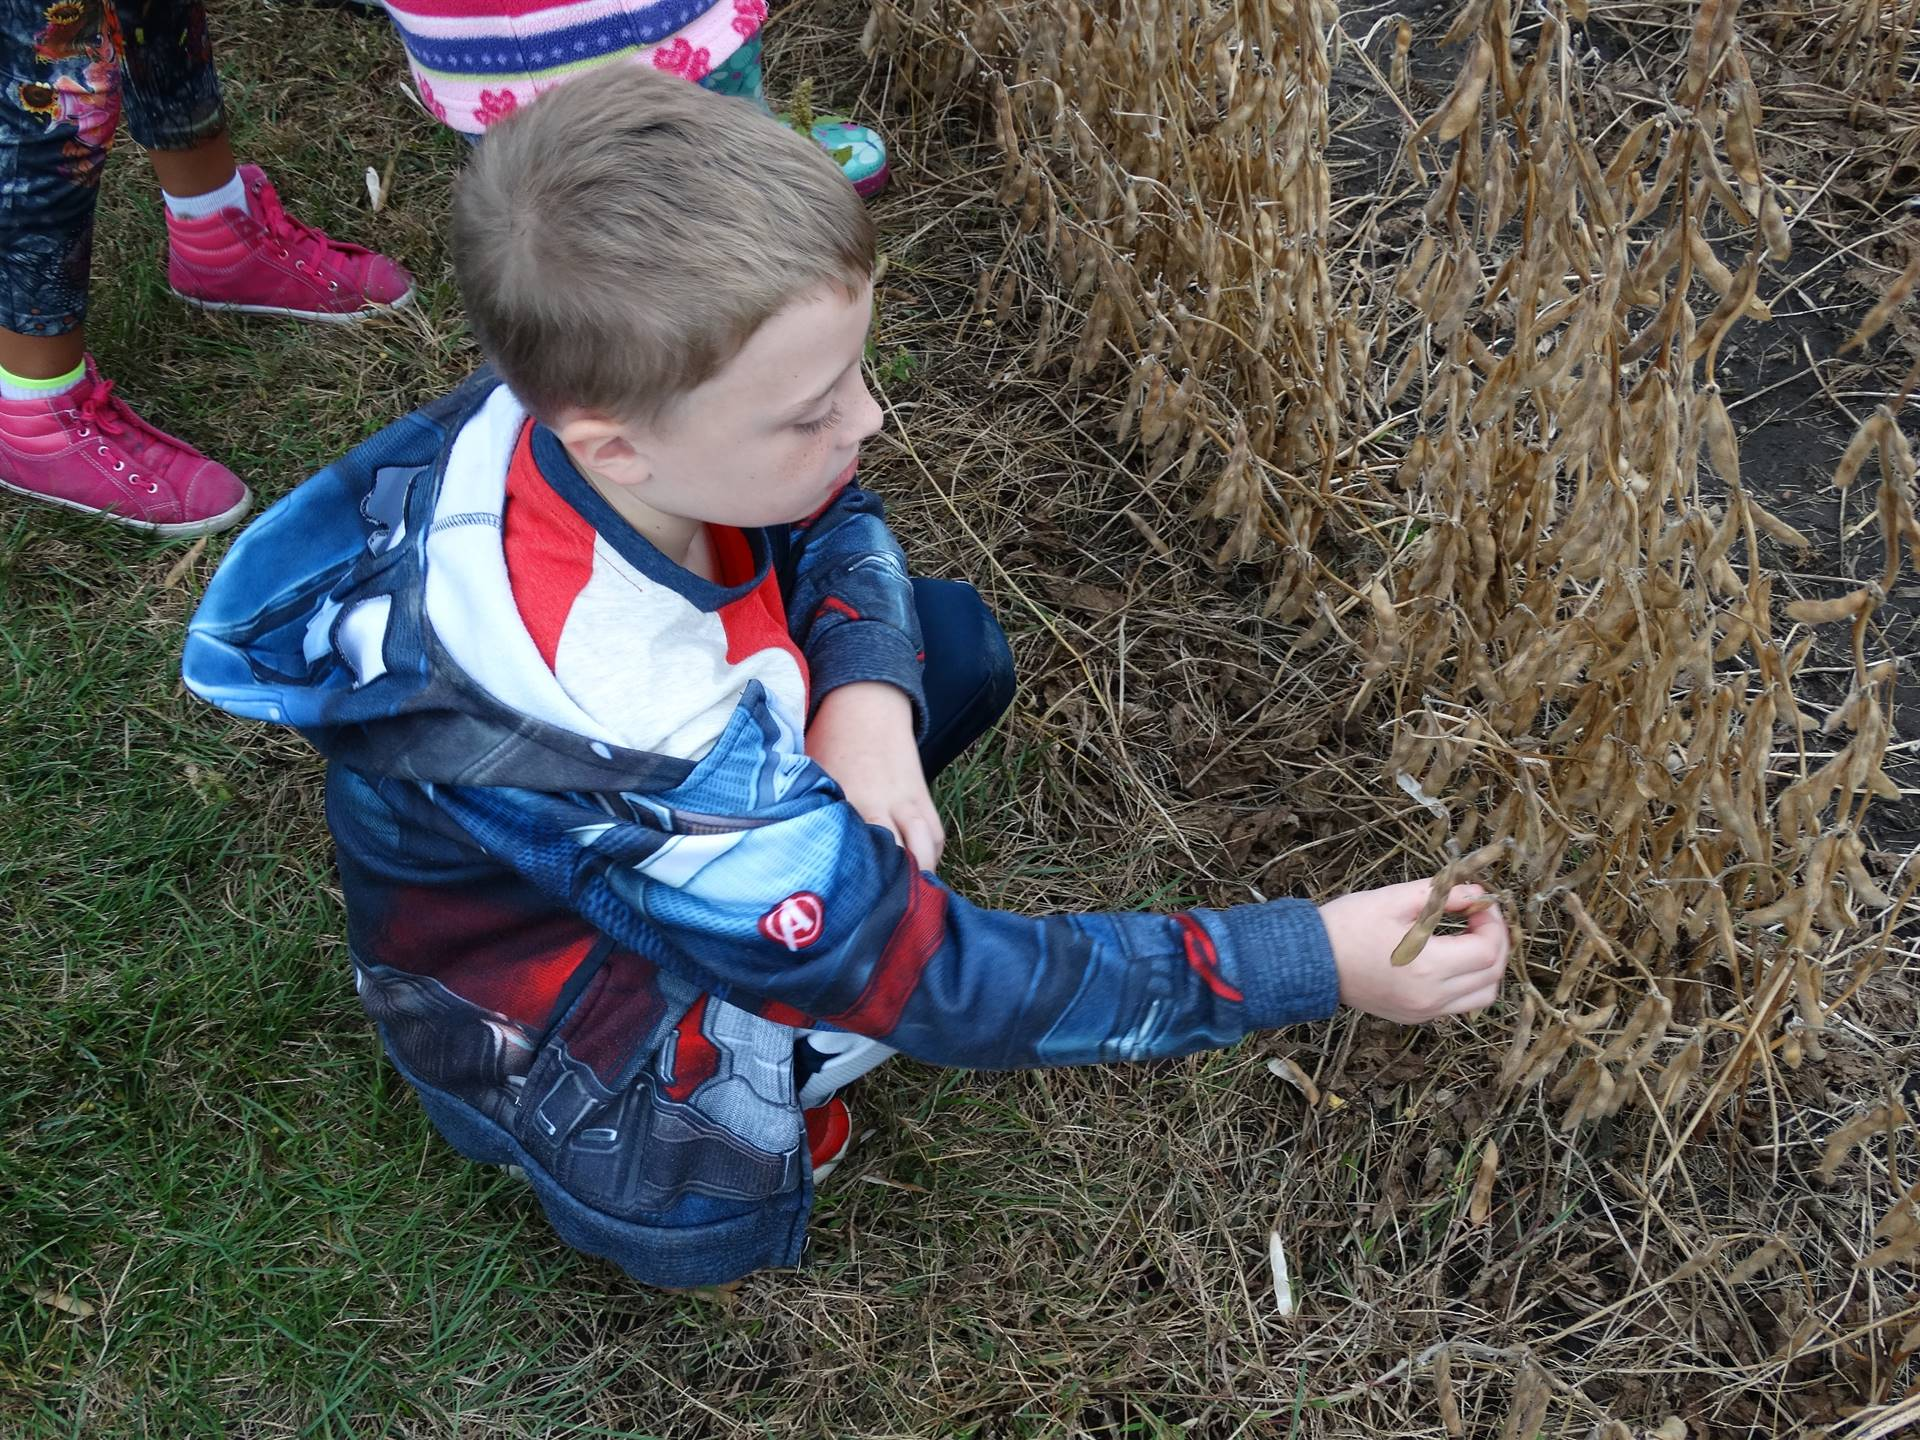 GHV first grader looking at a field during a field trip to a farm